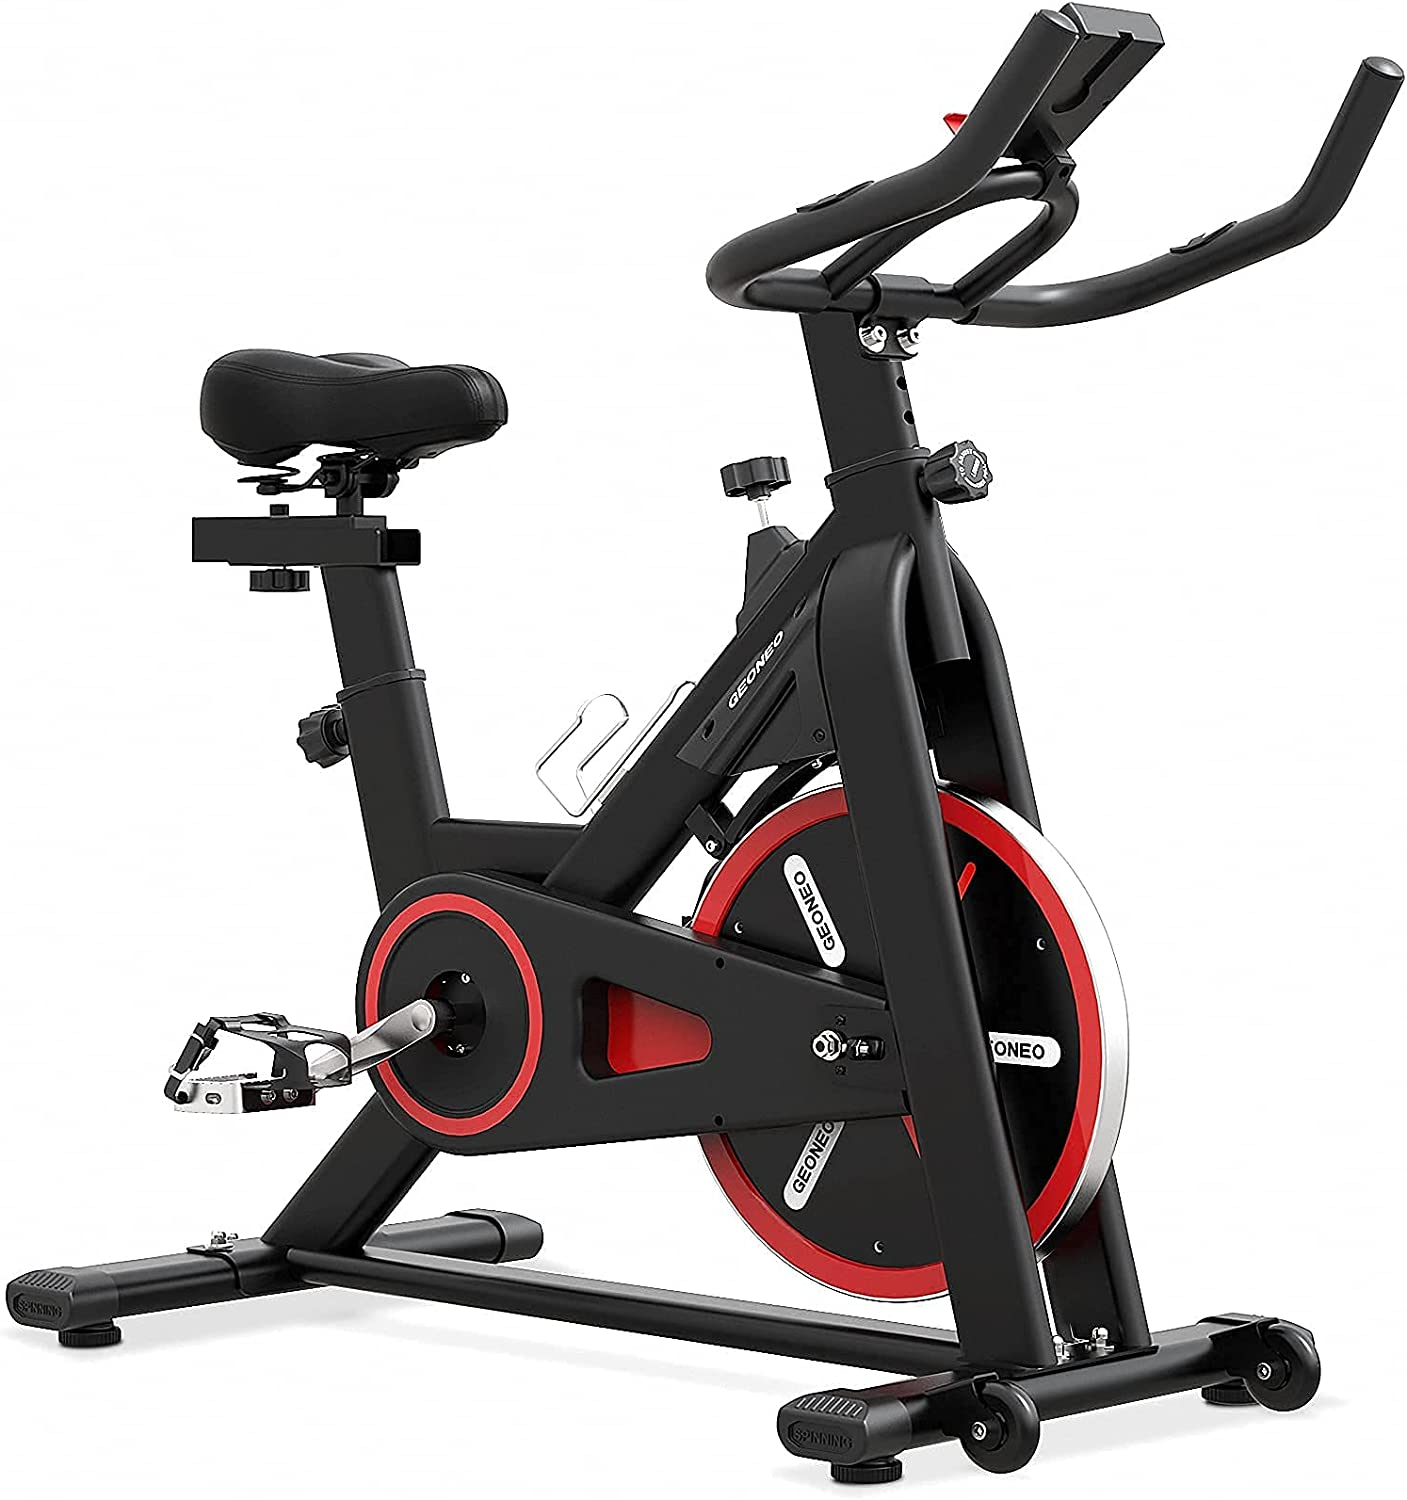 61jbdnrOYwS. AC SL1500 Best Spin Bikes With Magnetic Resistance in [2021 Reviews]